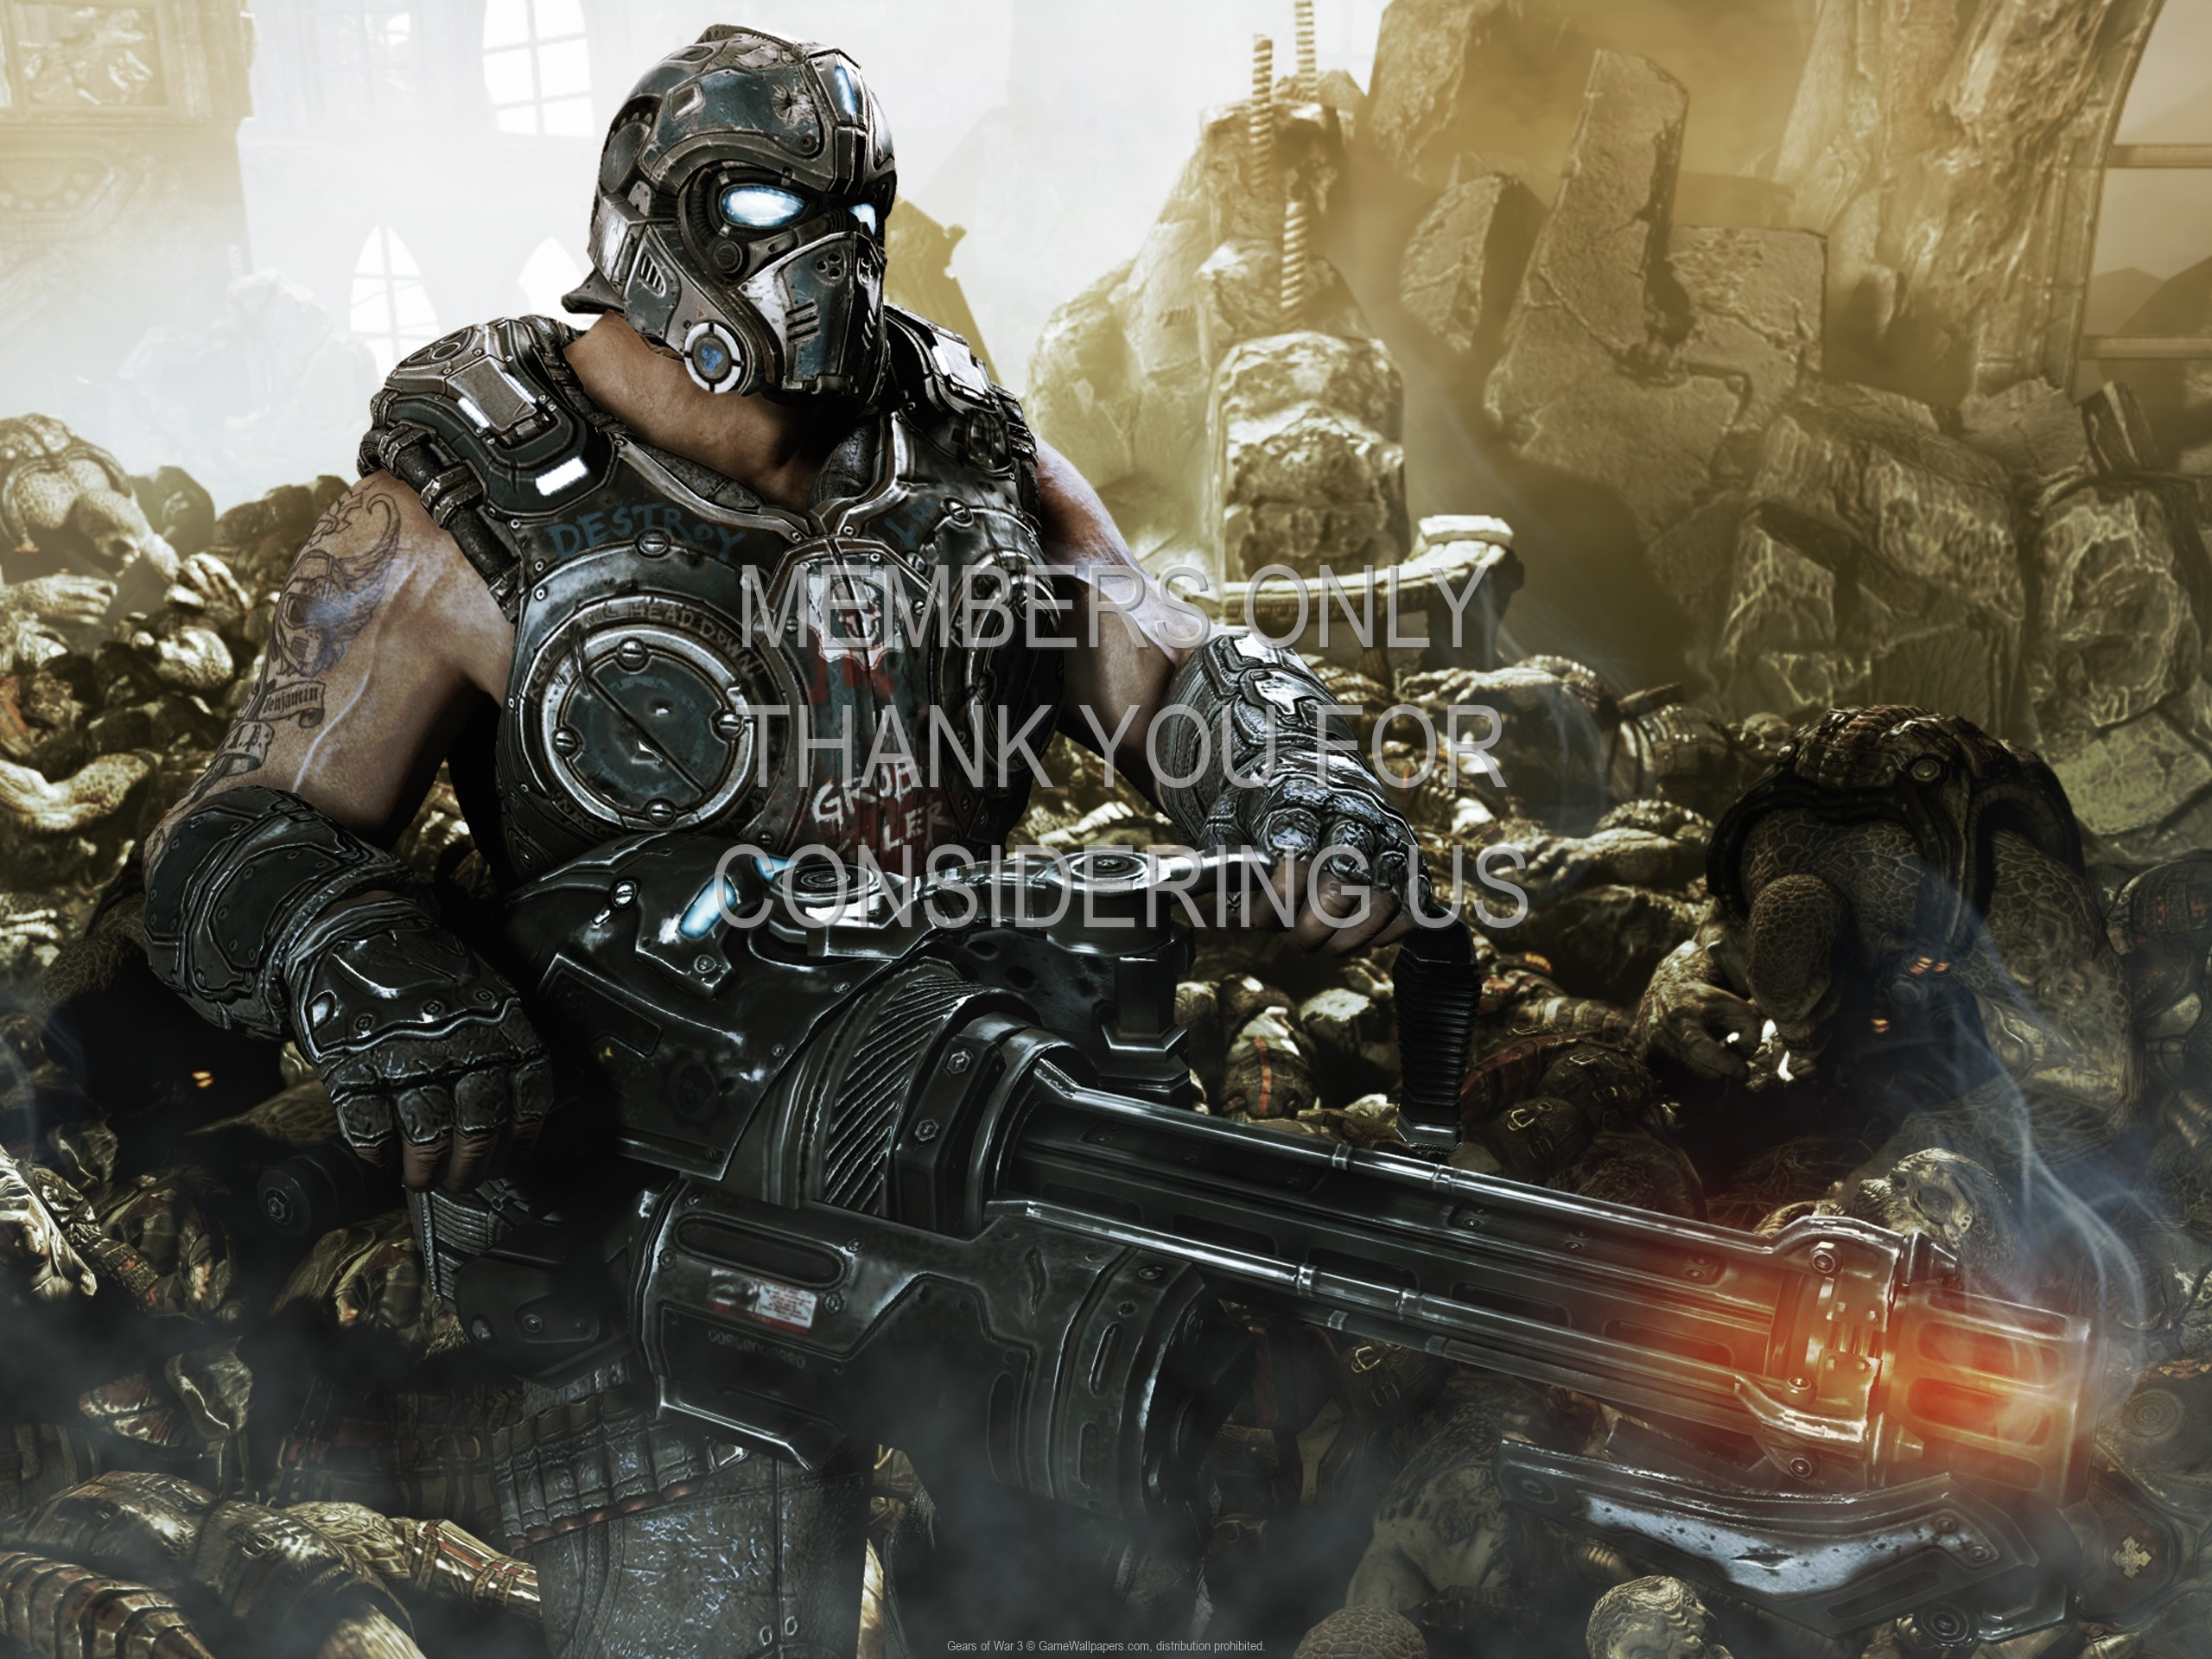 2560x1920 Gears of War 3 wallpaper 02 @ 1920x1080